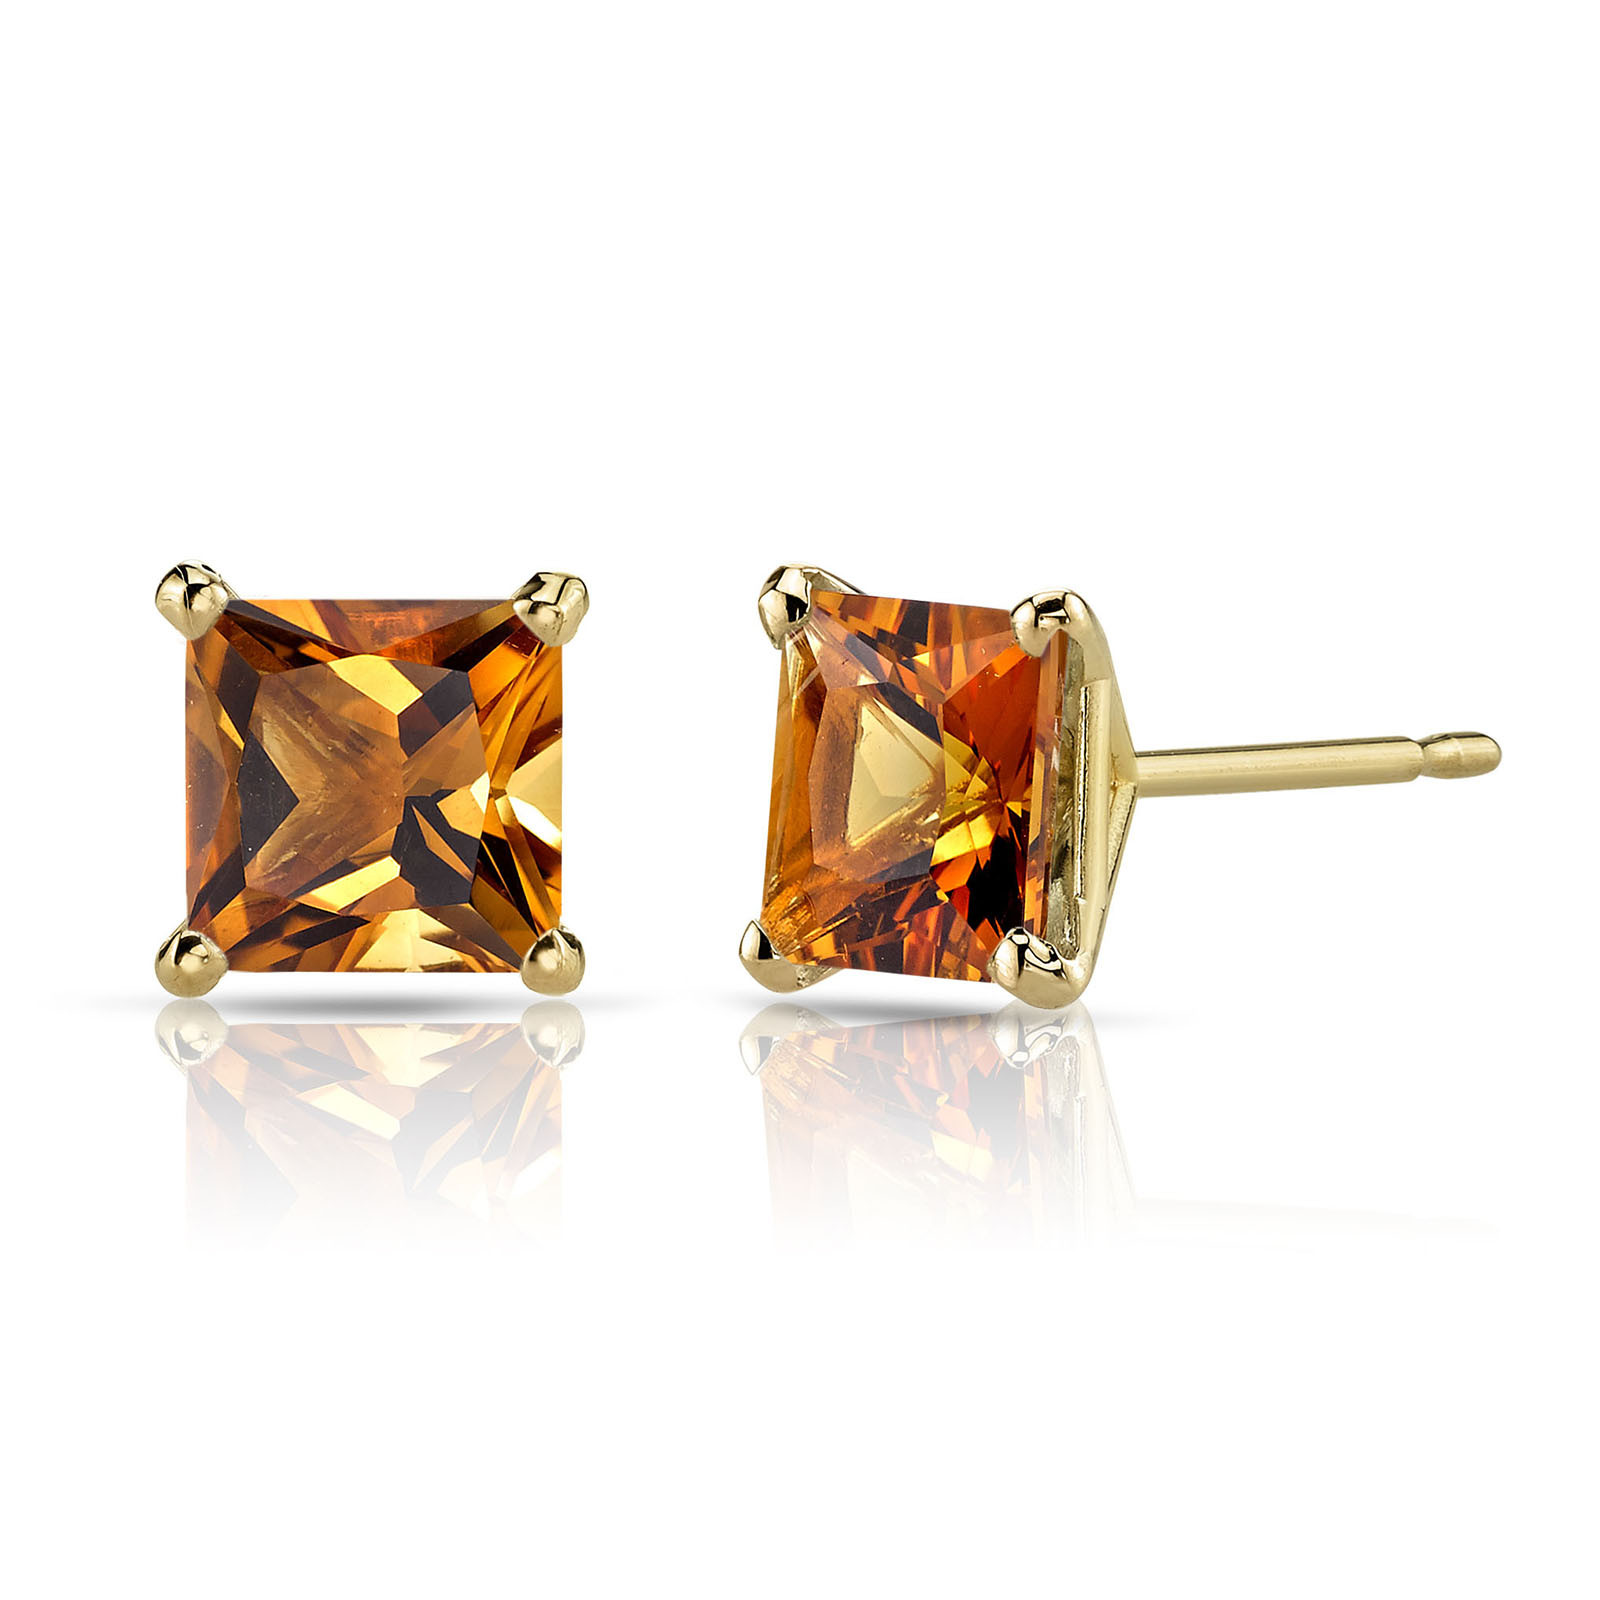 9e830c74b30ef Princess Cut Citrine Stud Earrings in 9ct Gold